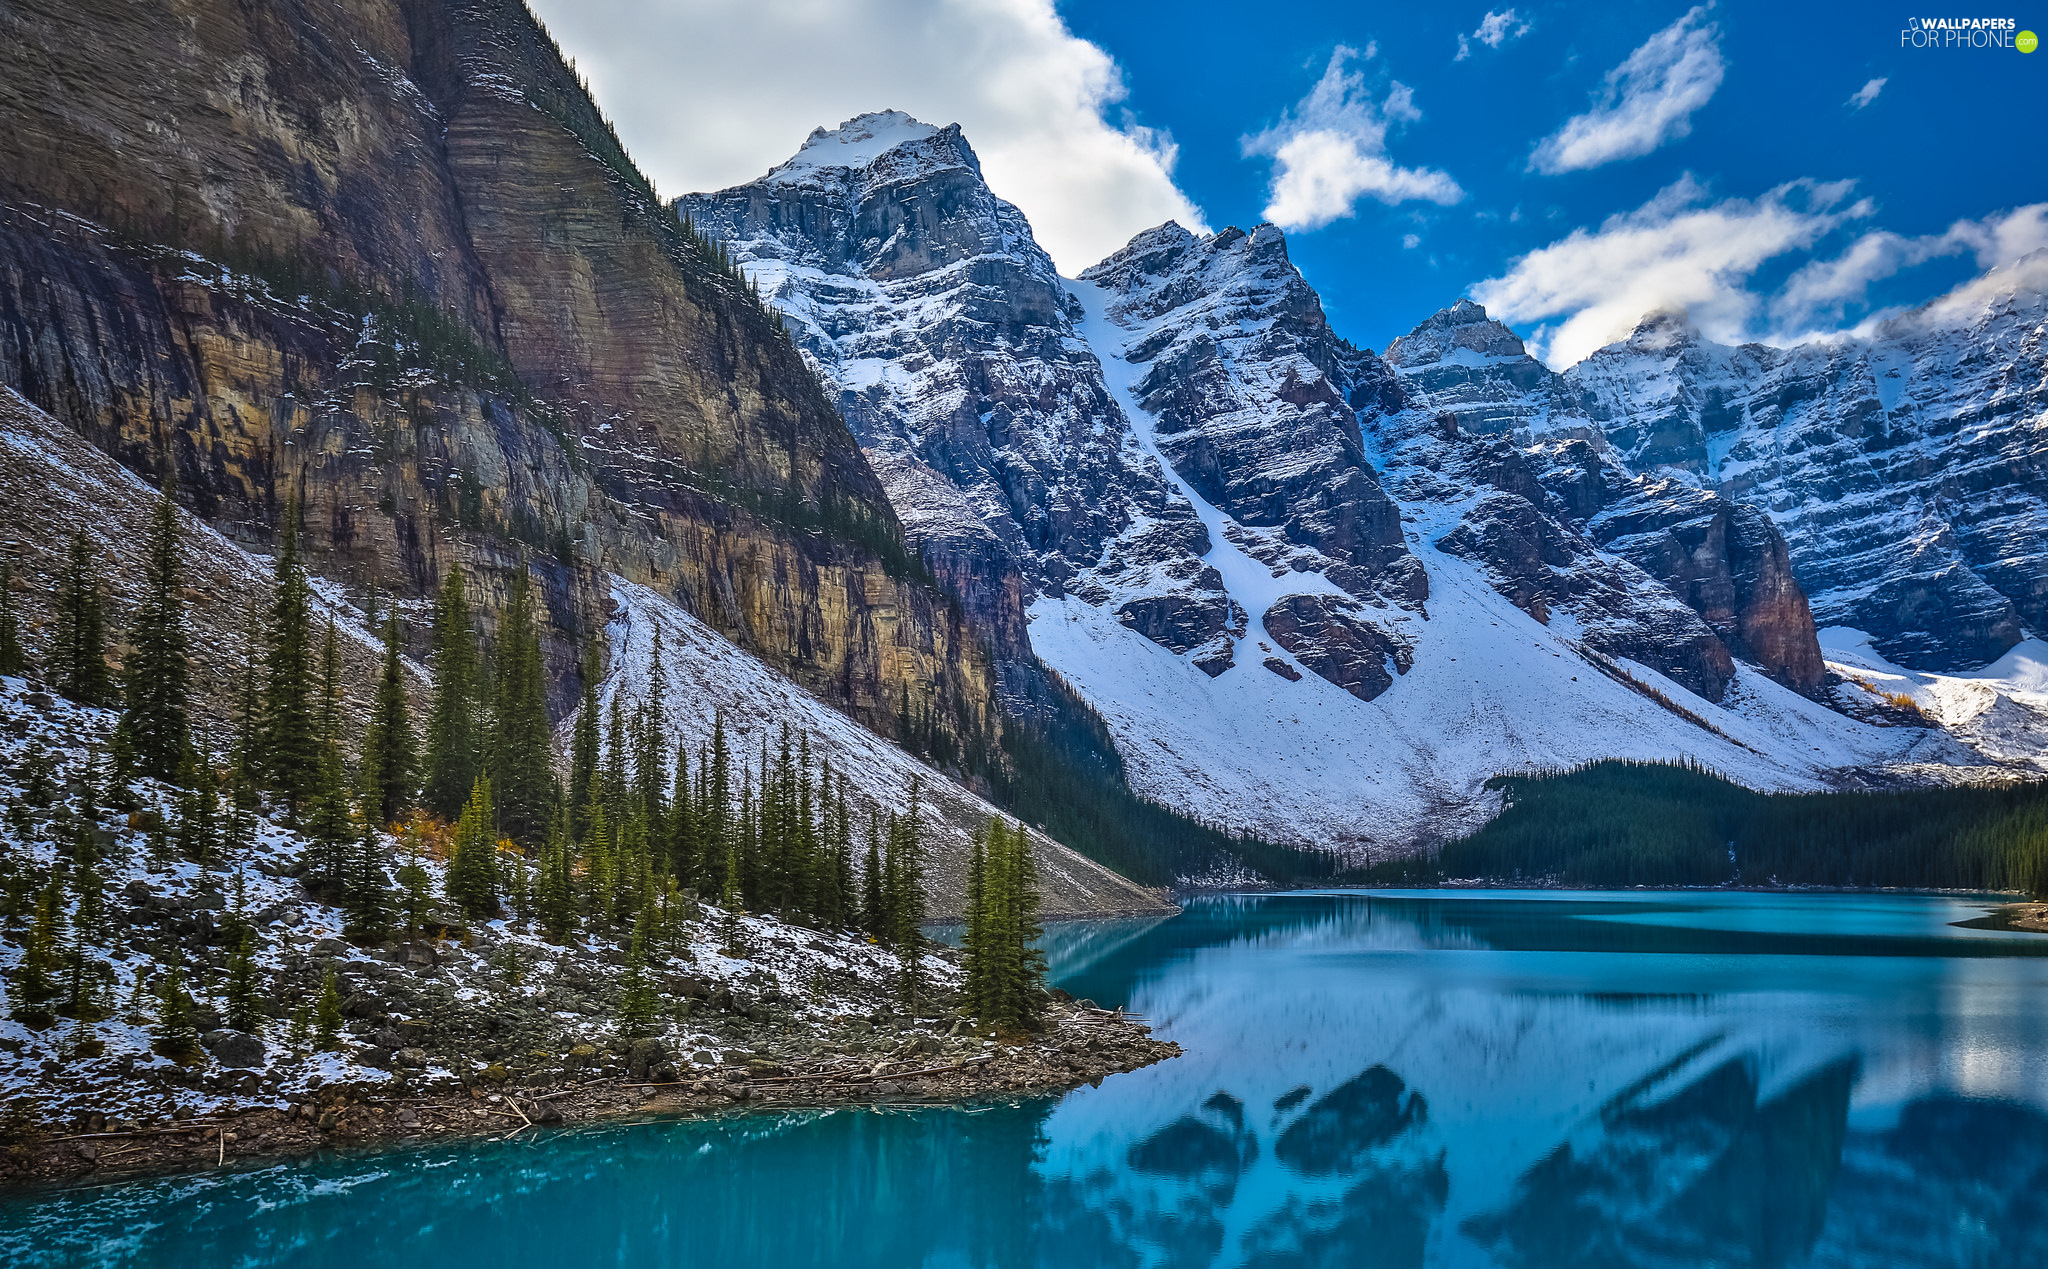 Alberta, Canada, Banff National Park, Lake Moraine, Mountains, clouds, trees, viewes, Valley of the Ten Peaks